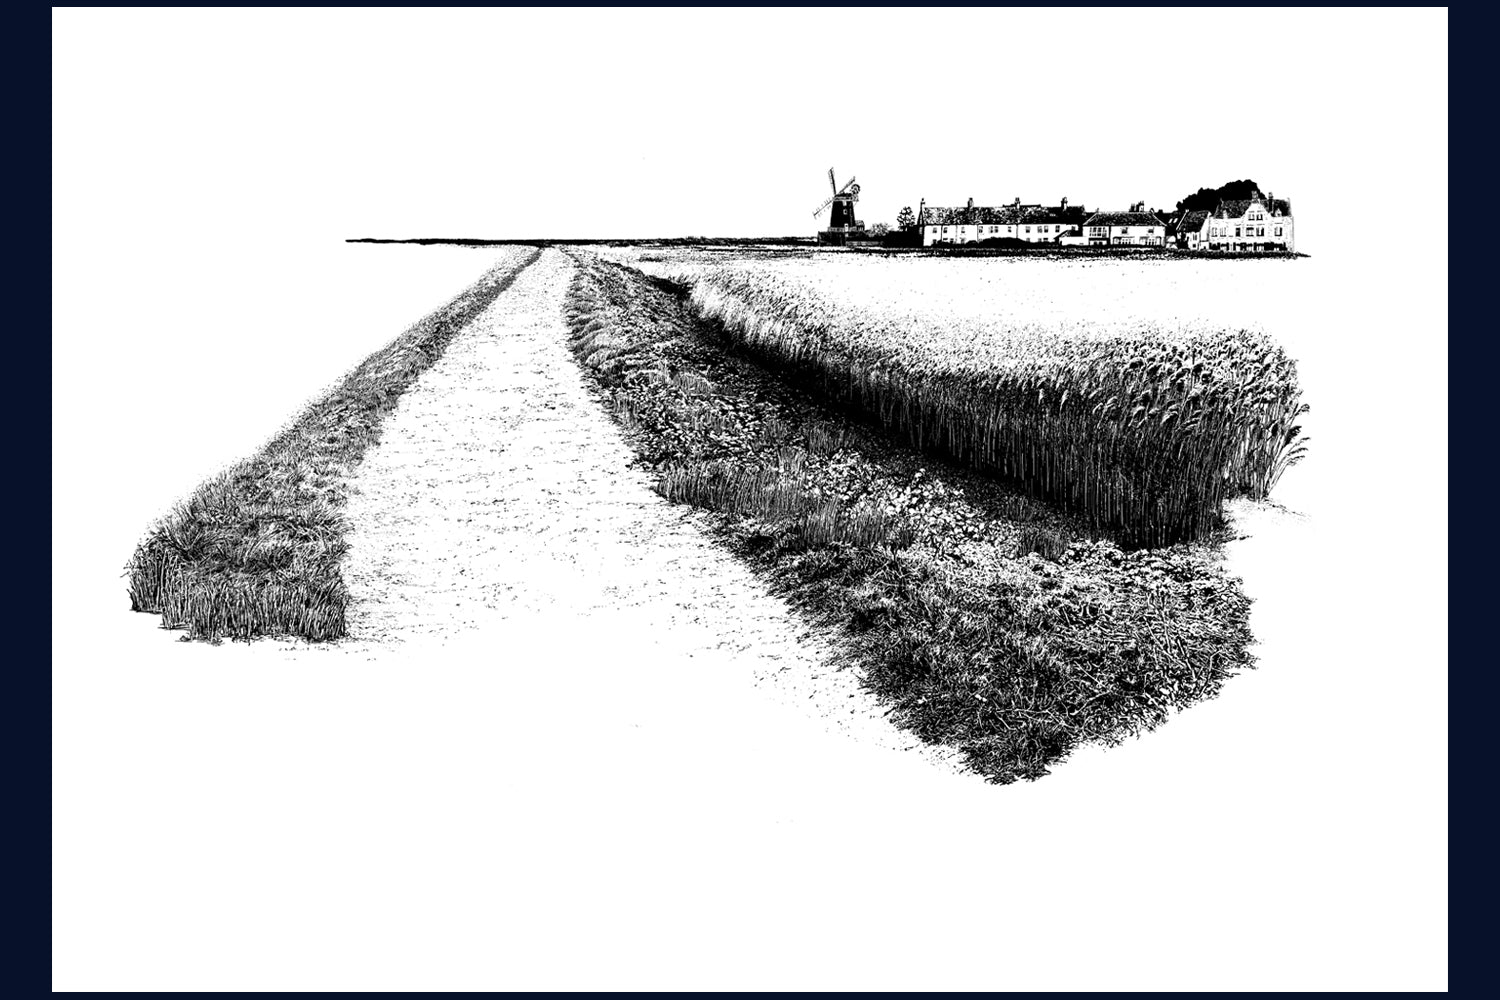 Framed Land Song Limited Edition Fine Art Print: Cley, Norfolk no. 17 of 50